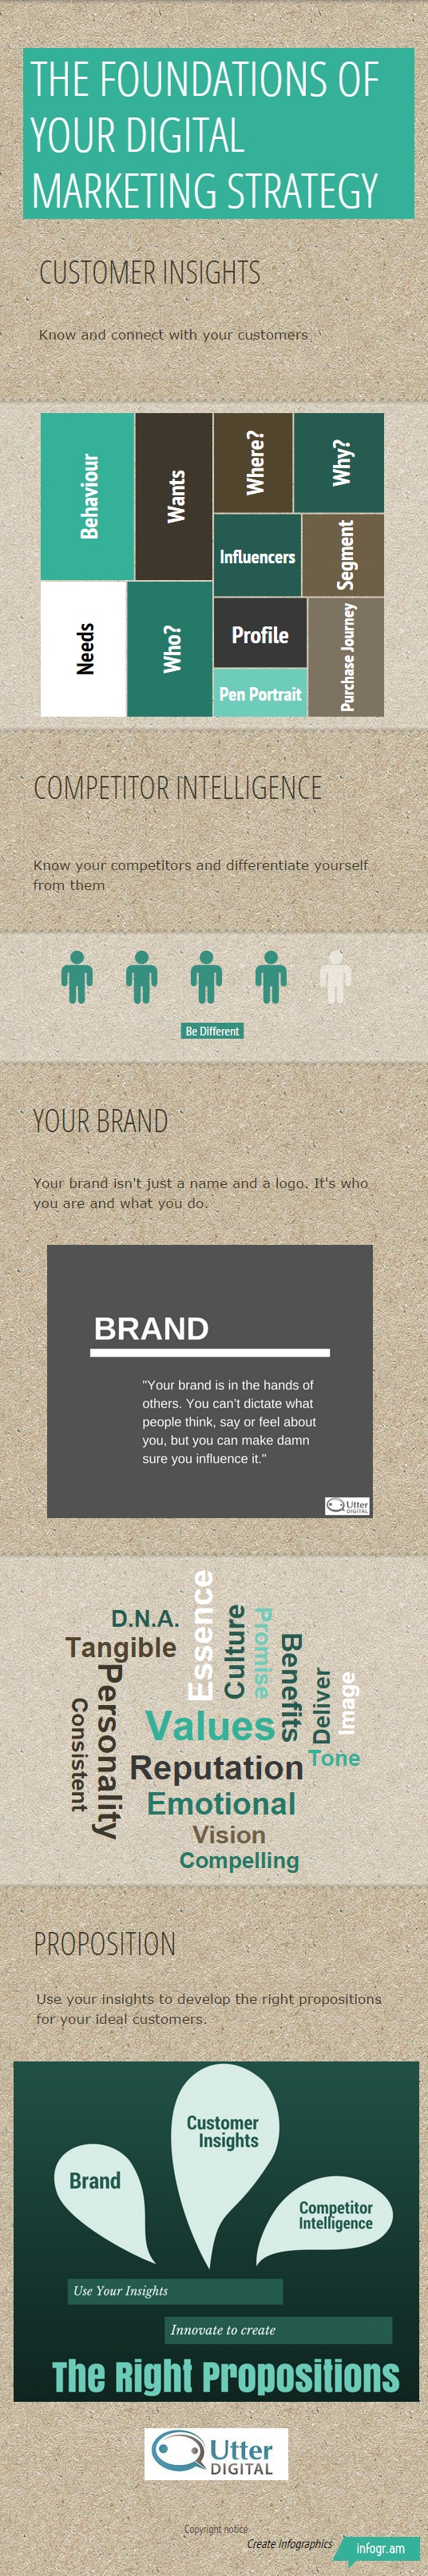 Infographic digital marketing strategy foundations